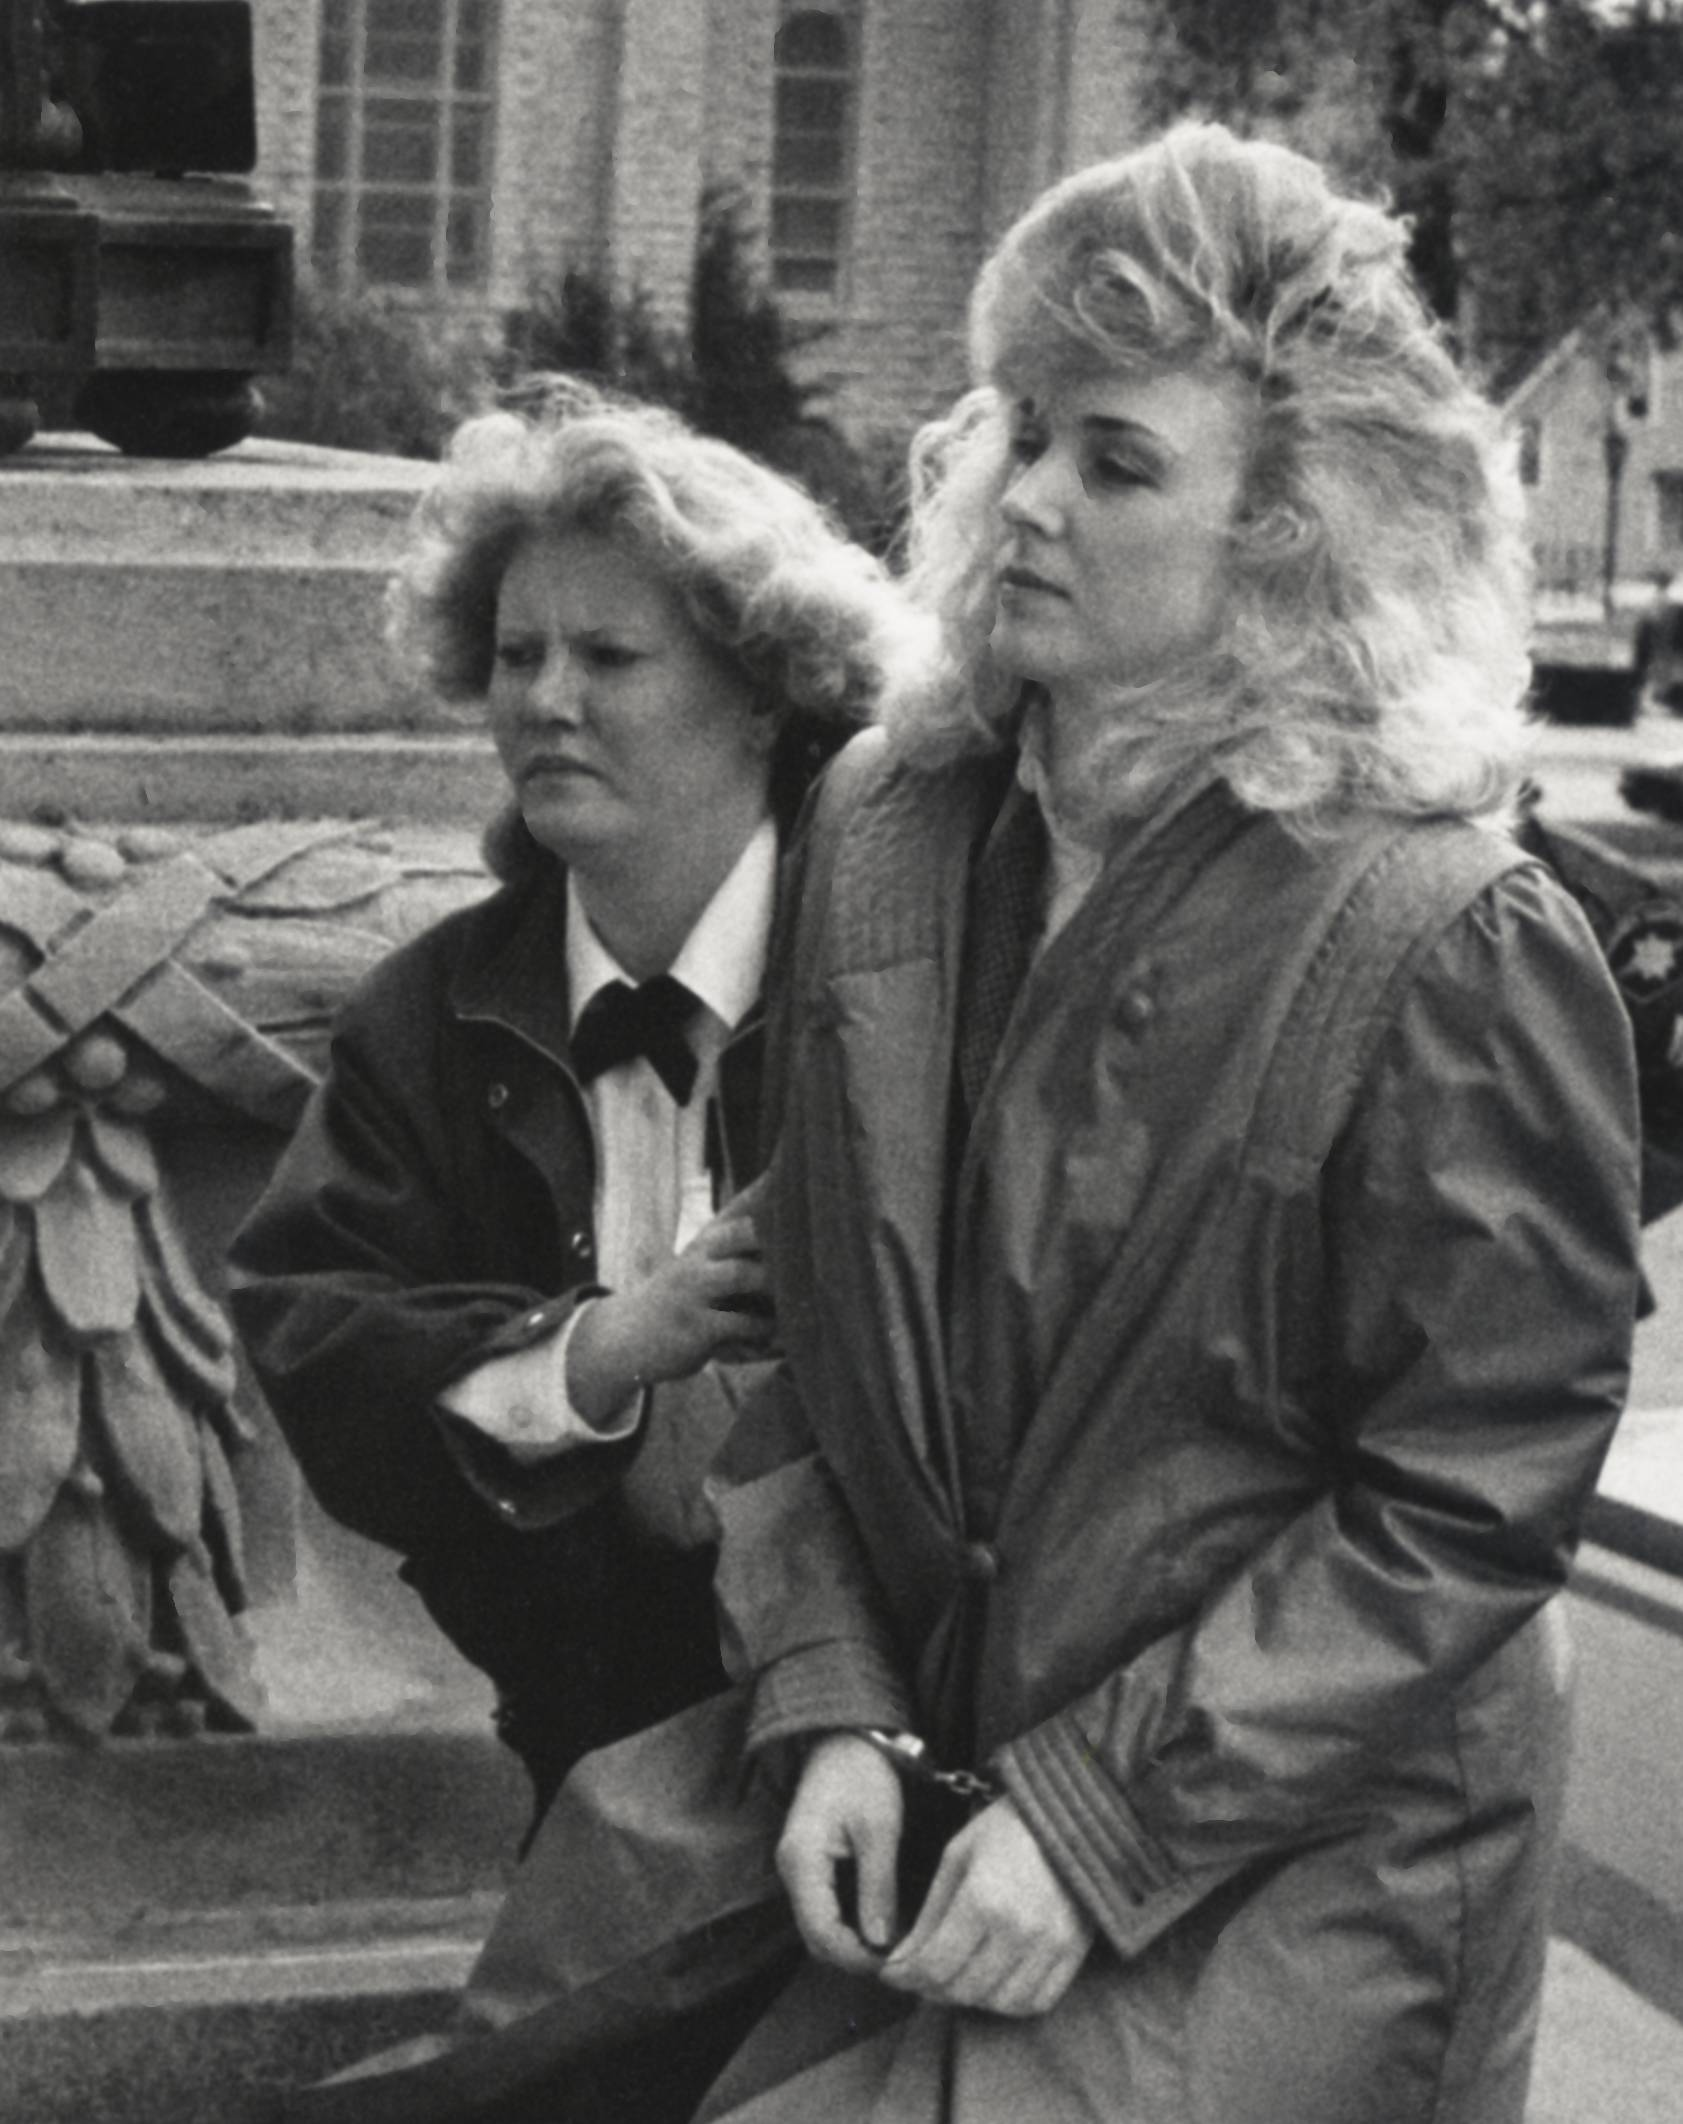 Nancy Rish, right, is escorted outside the Kankakee courthouse during her trial in 1988.